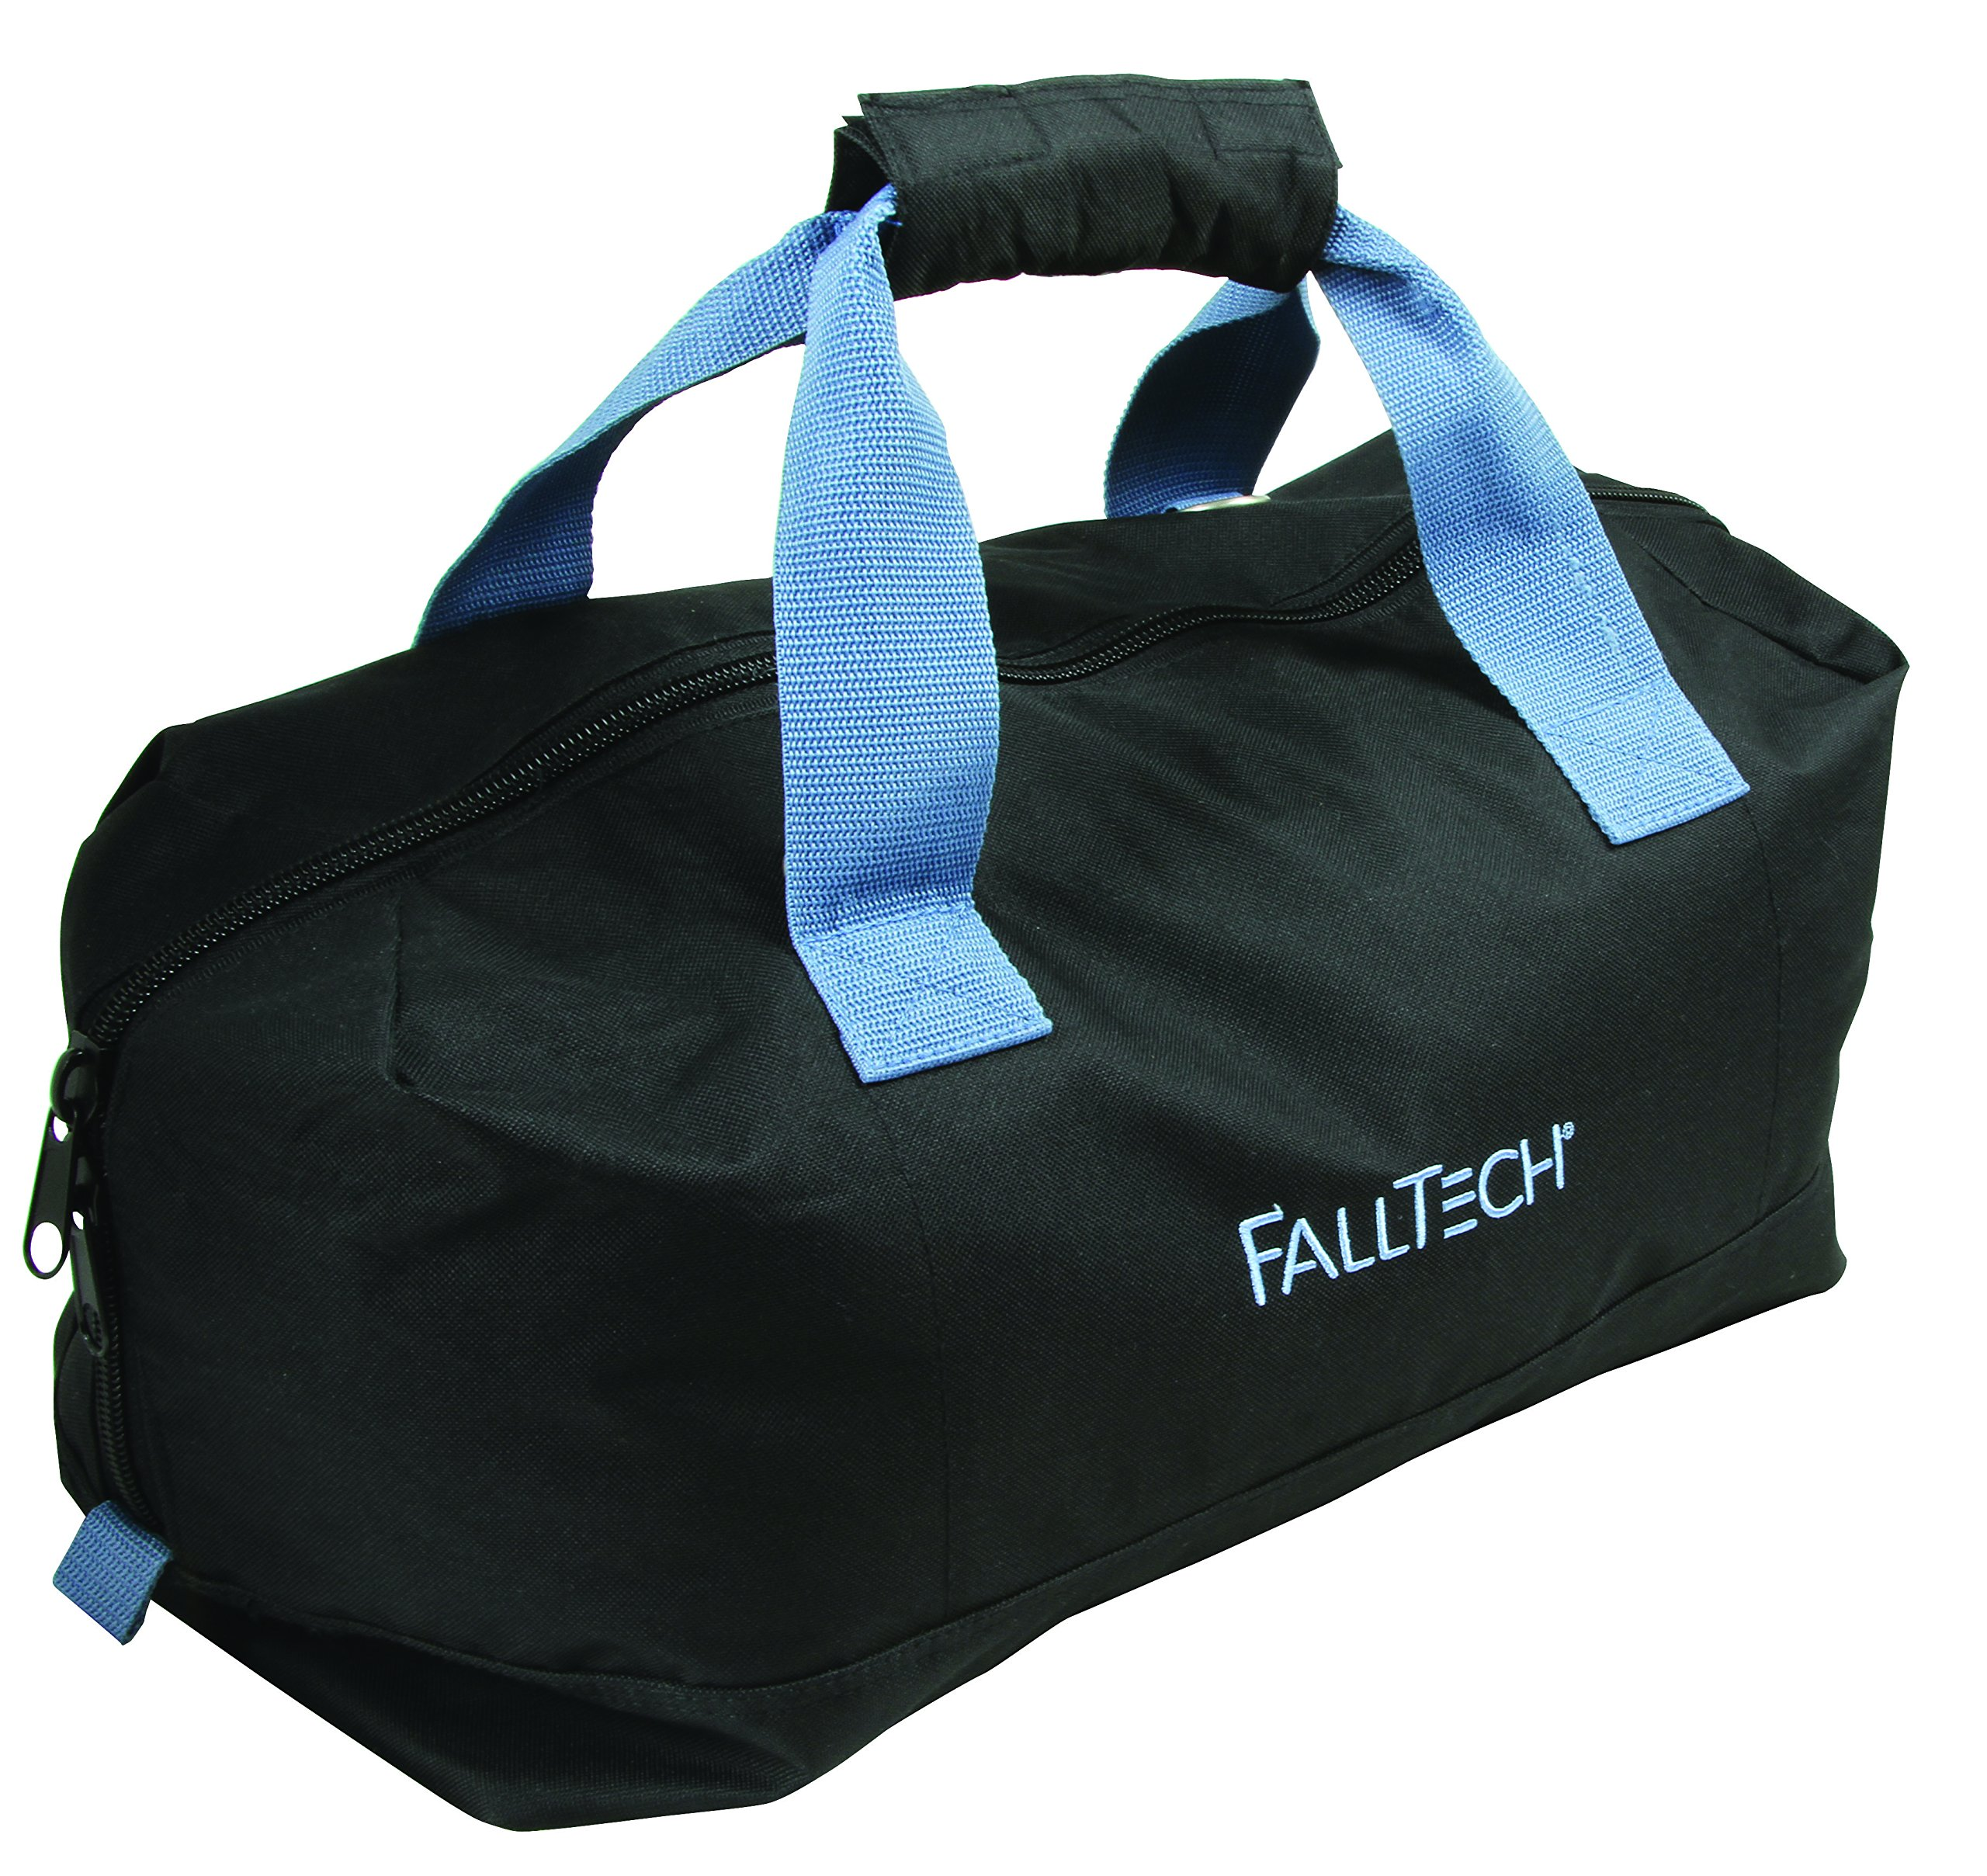 FallTech 5007LP Storage Large Gear Bag with Shoulder Strap and Carry Handles, 10'' x 18'', Black by FallTech